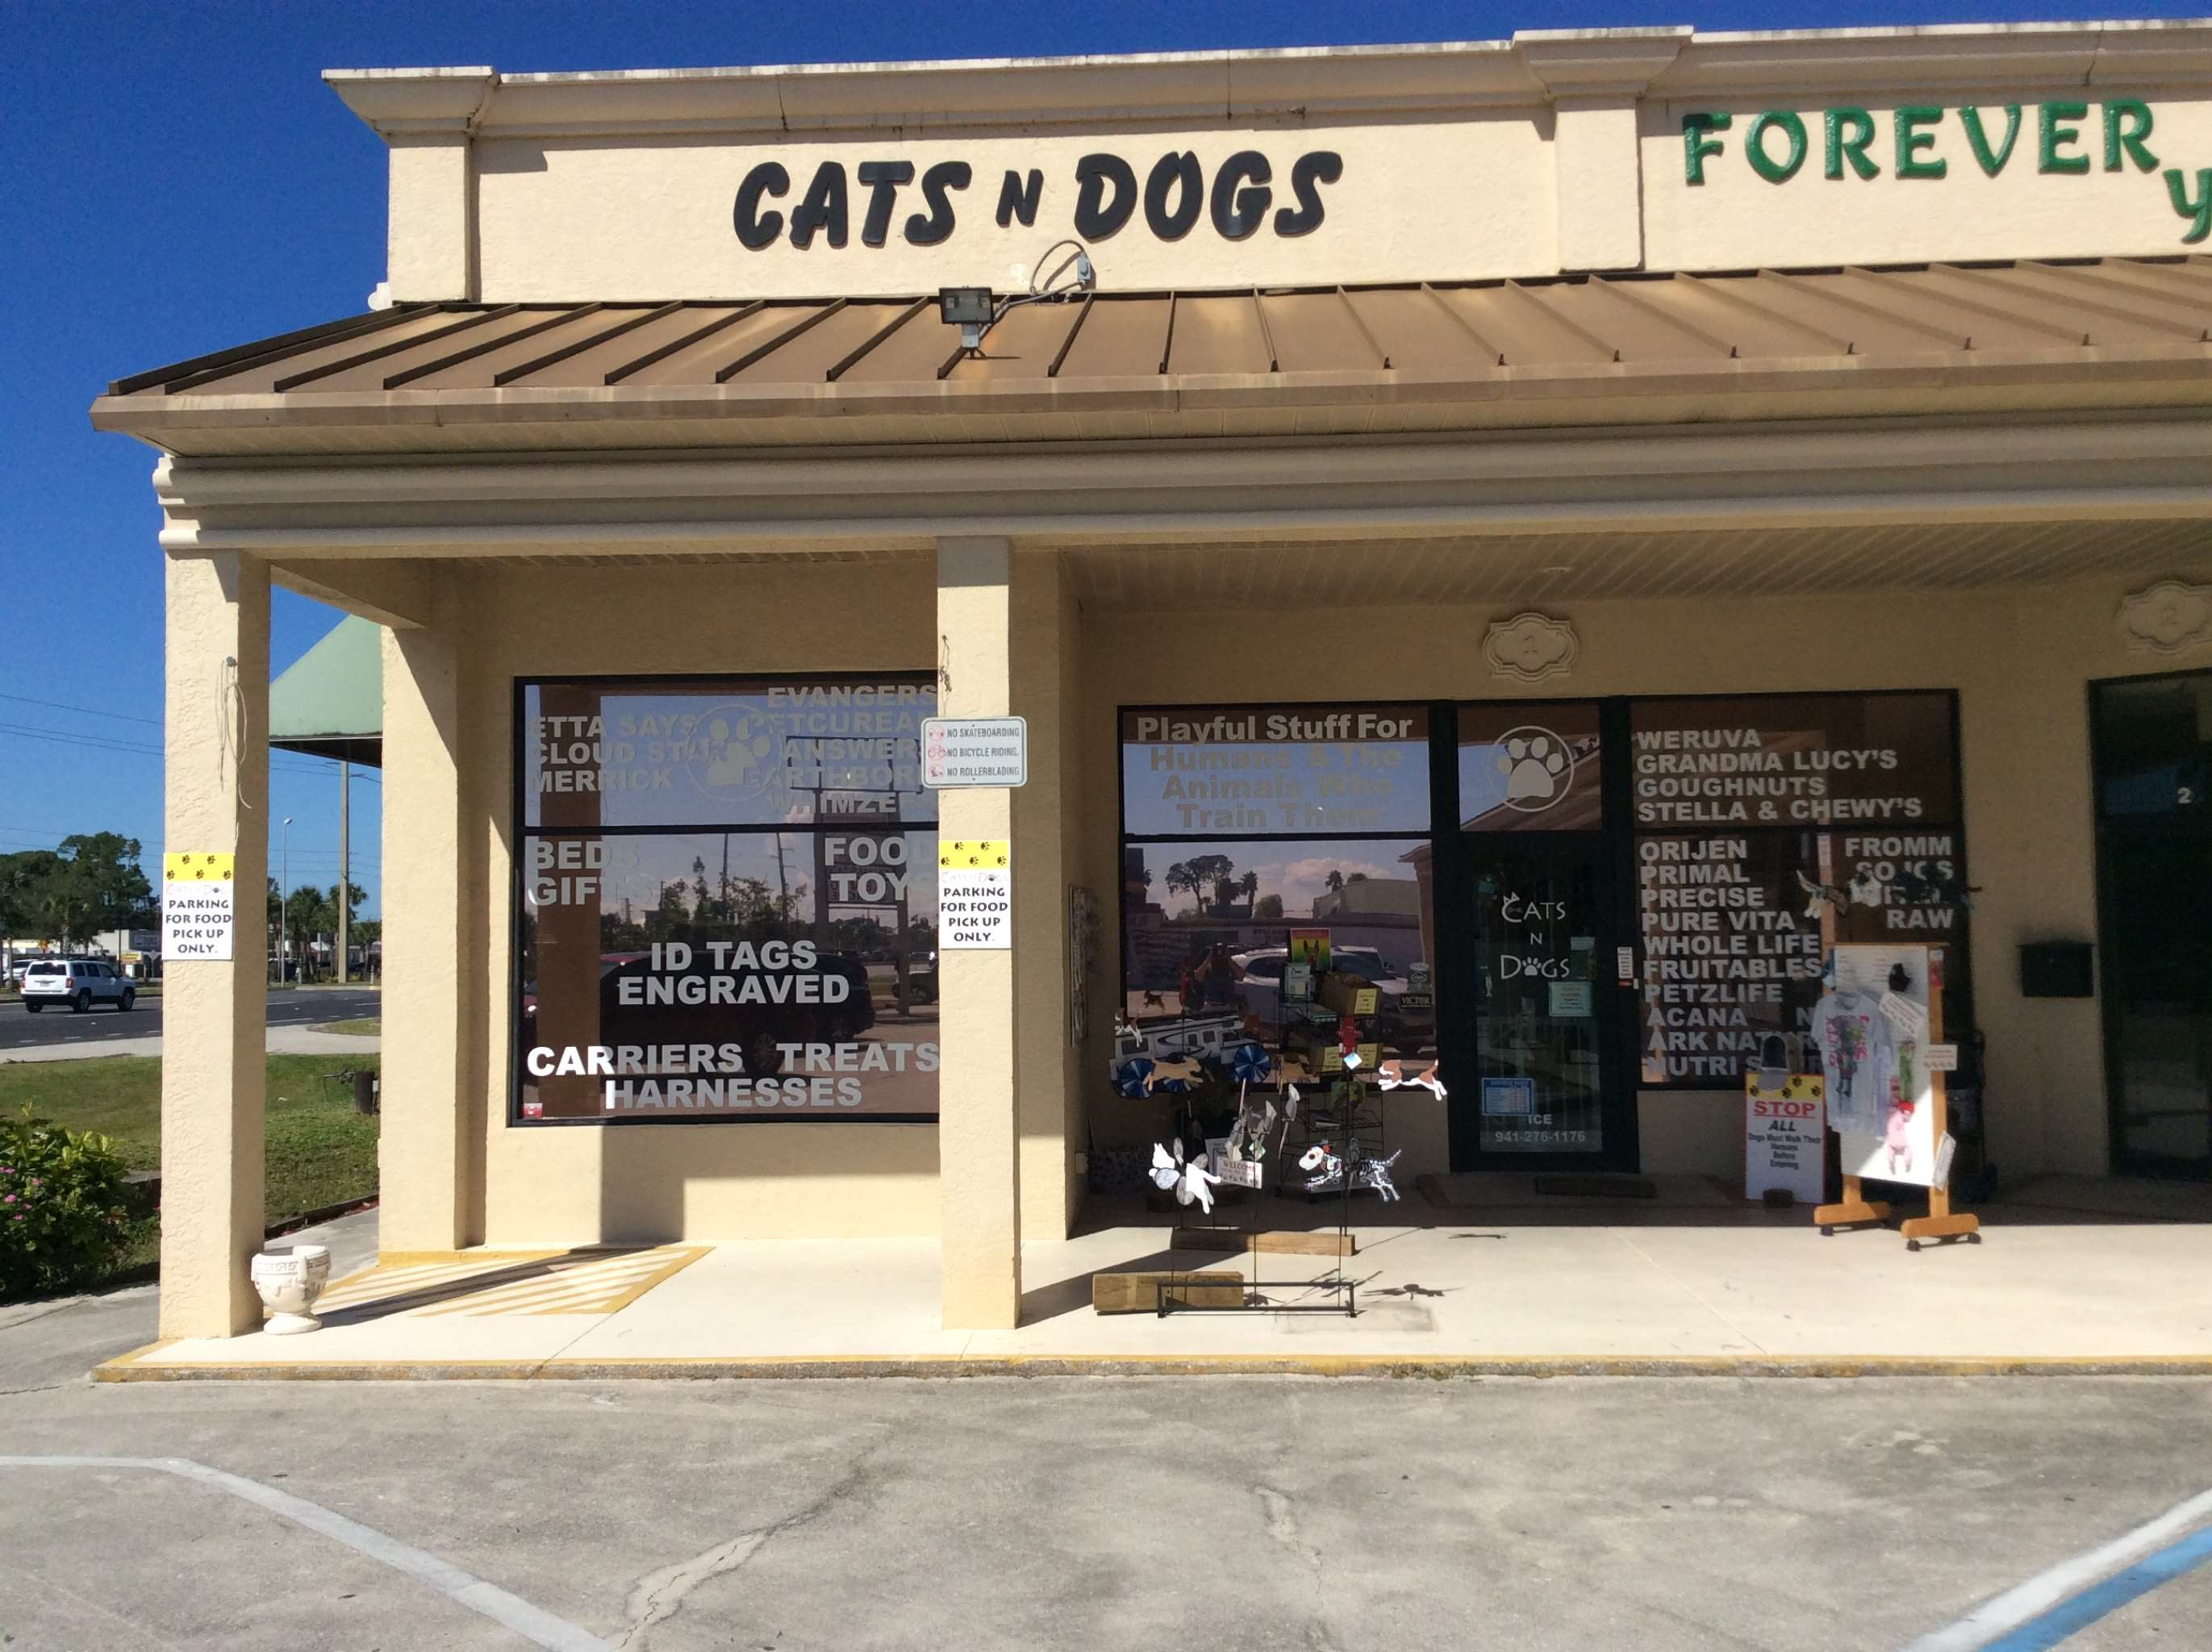 Cats n Dogs - Port Charlotte, FL - Pet Supplies